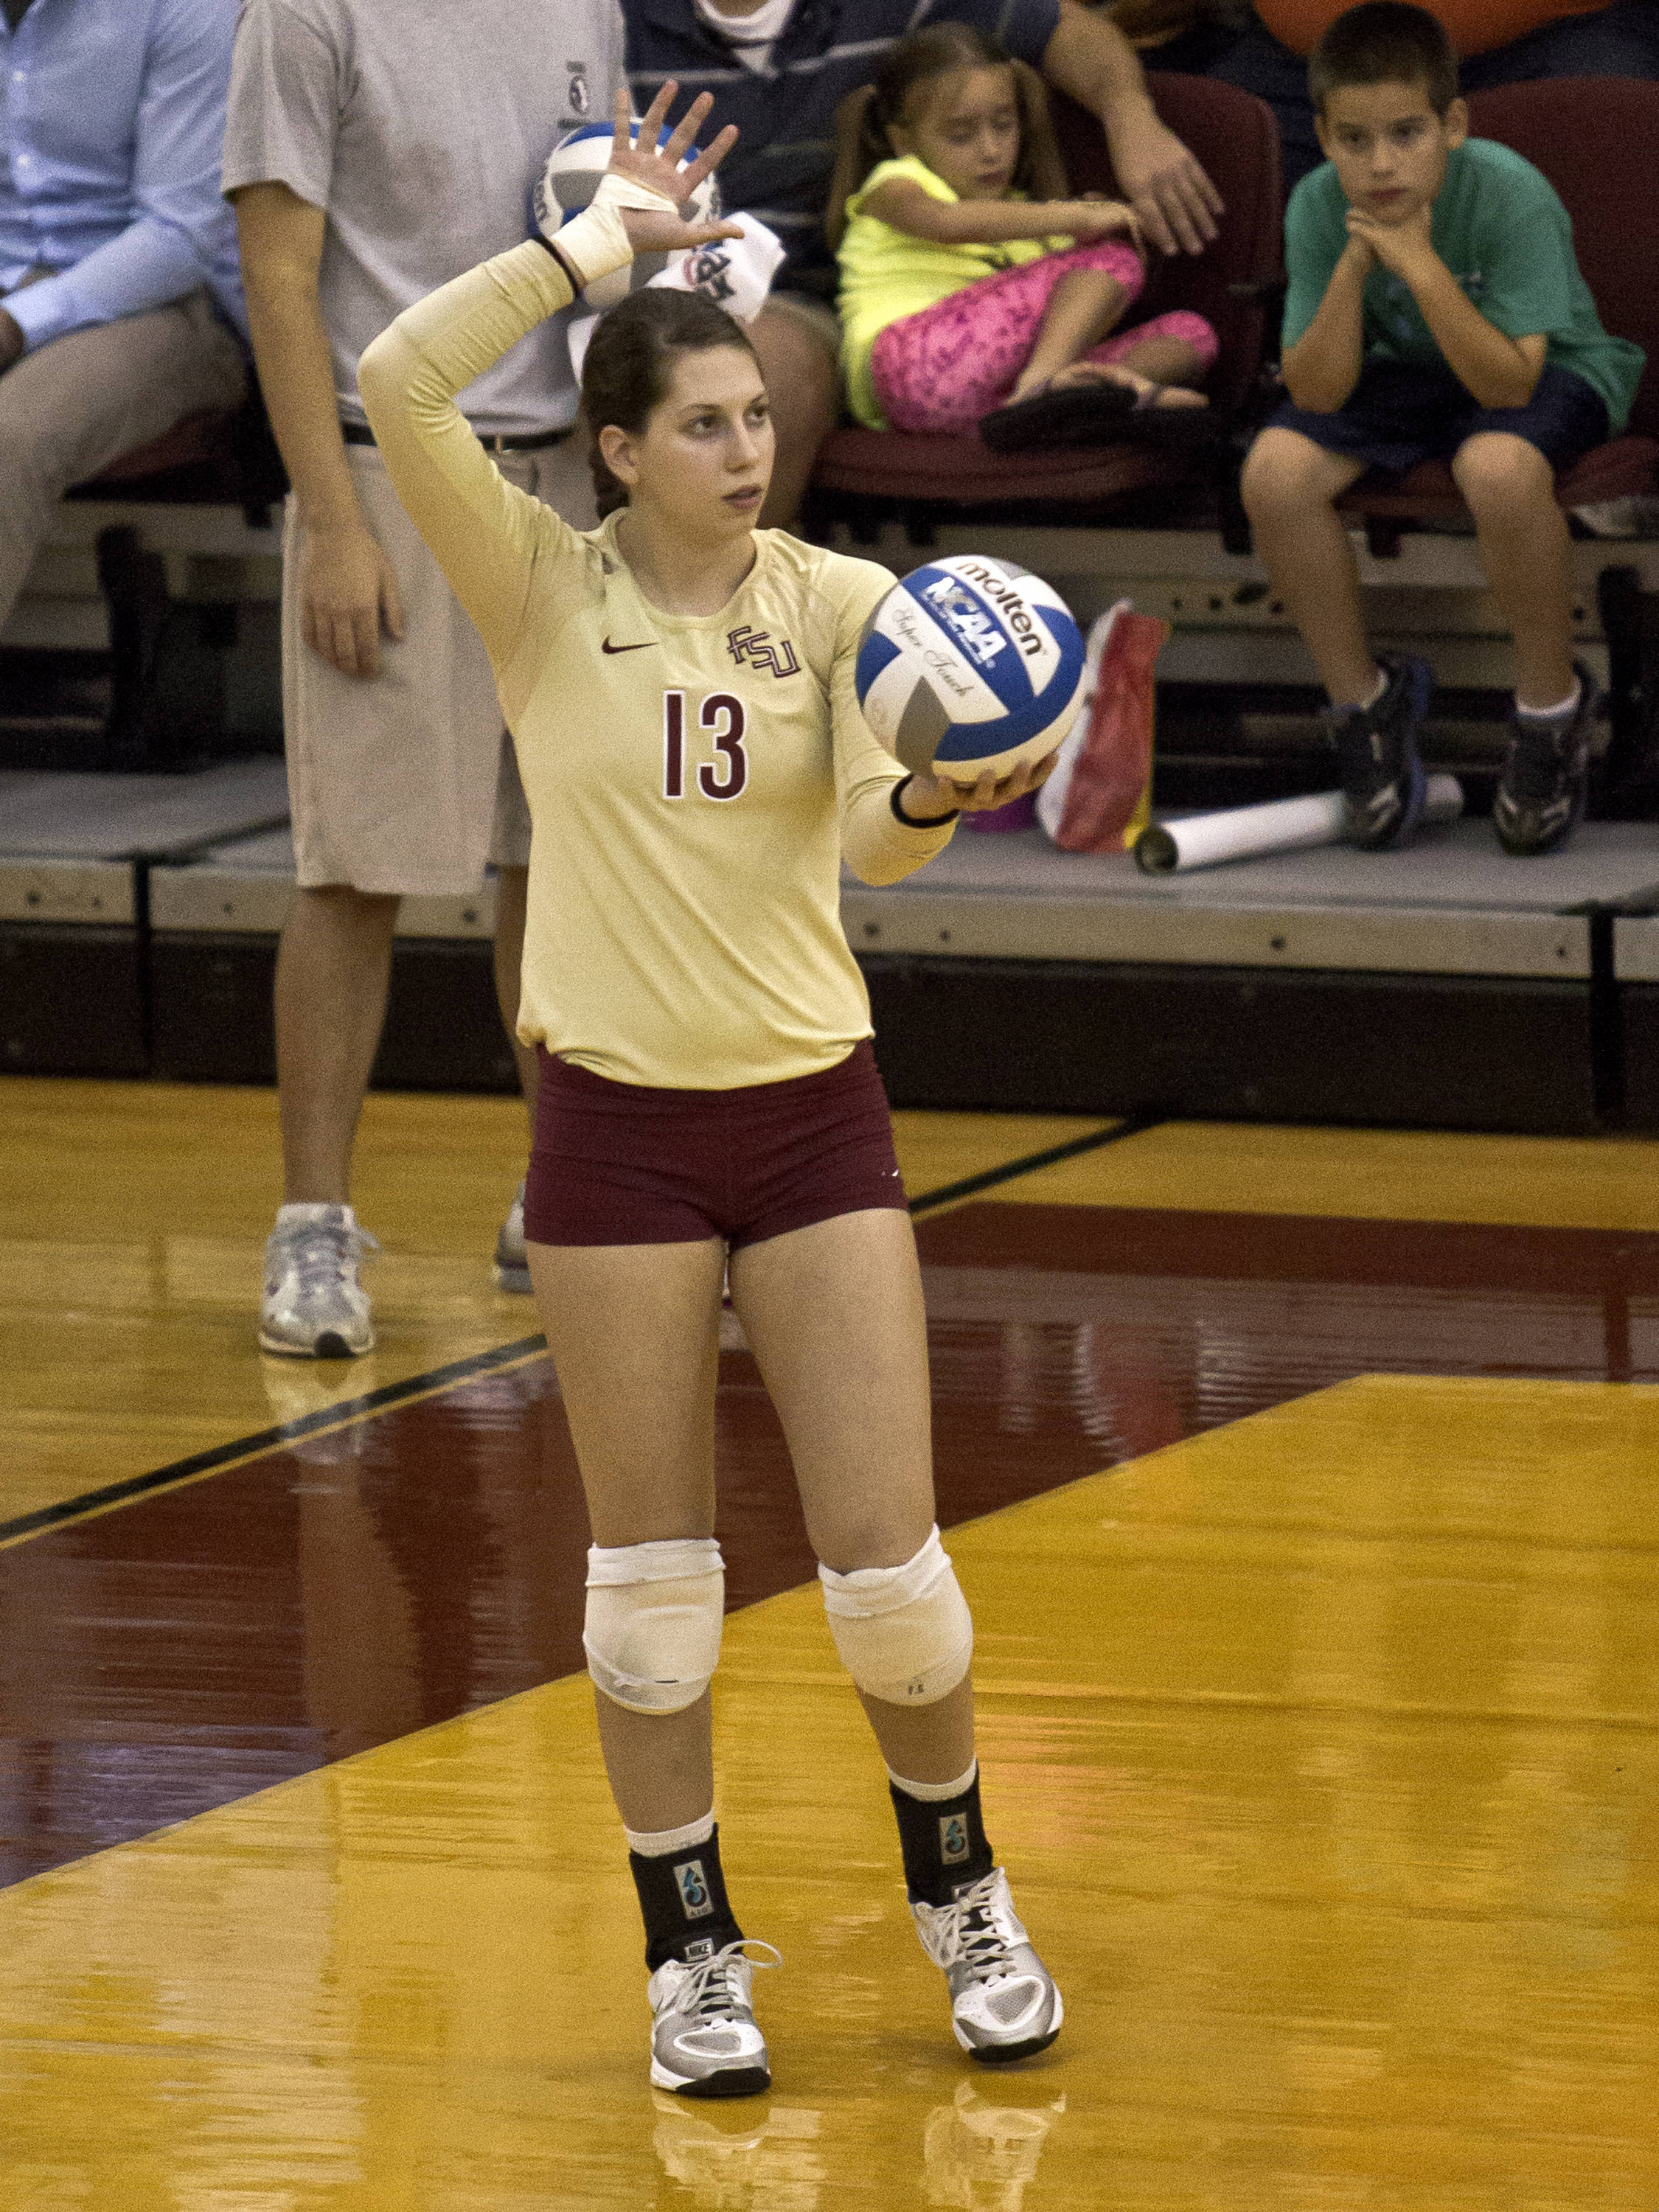 Laura Dadowski (13) ready to serve, FSU vs NC, 10/05/12 (Photo by Steve Musco)